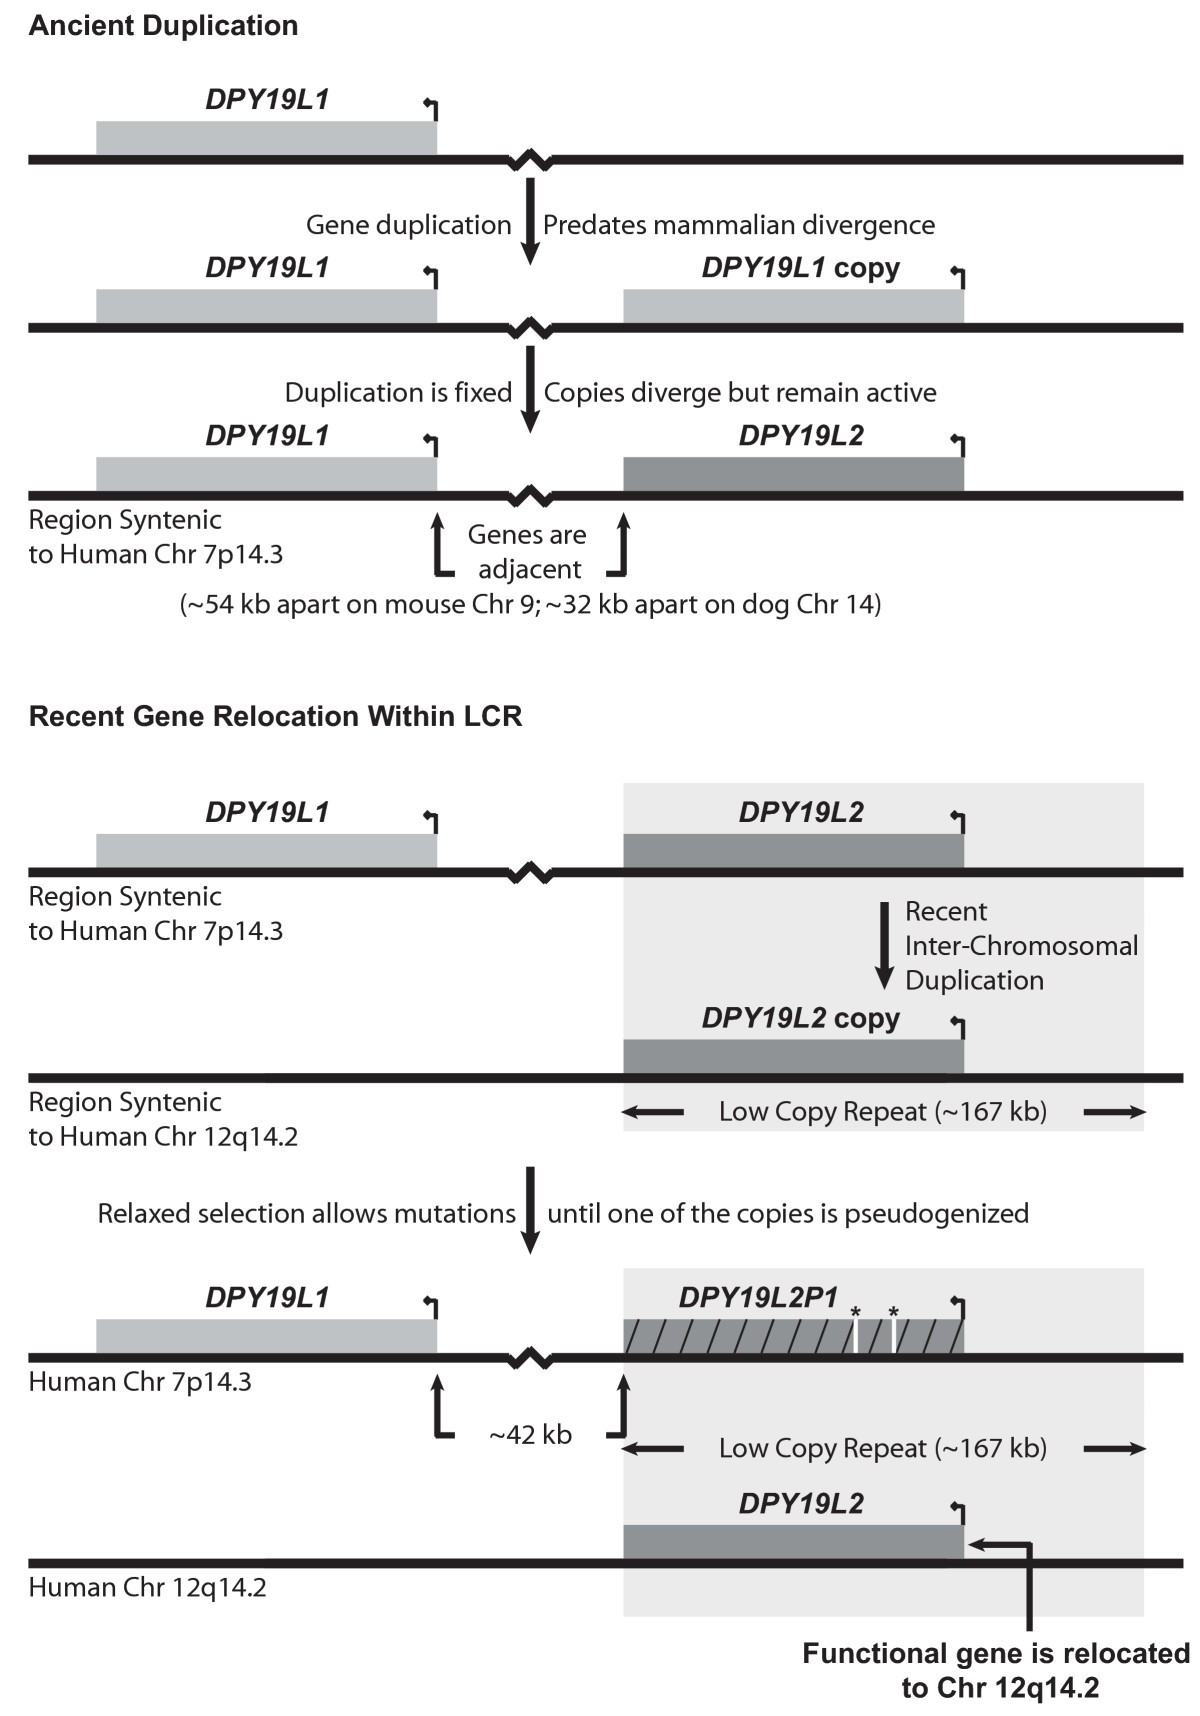 Duplication and relocation of the functional DPY19L2 gene within low